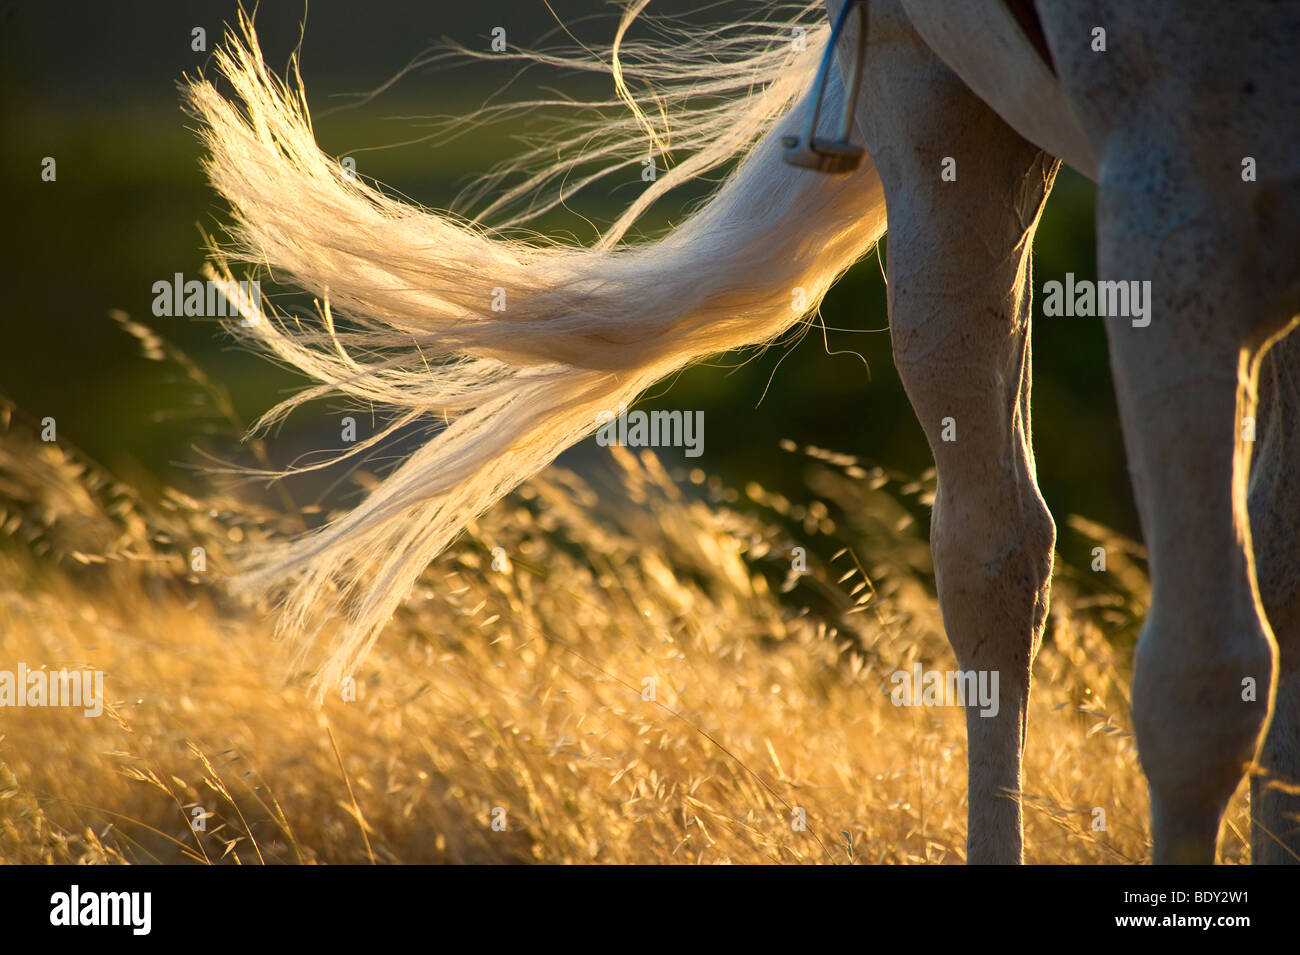 Horses Tail in Sunlight - Stock Image